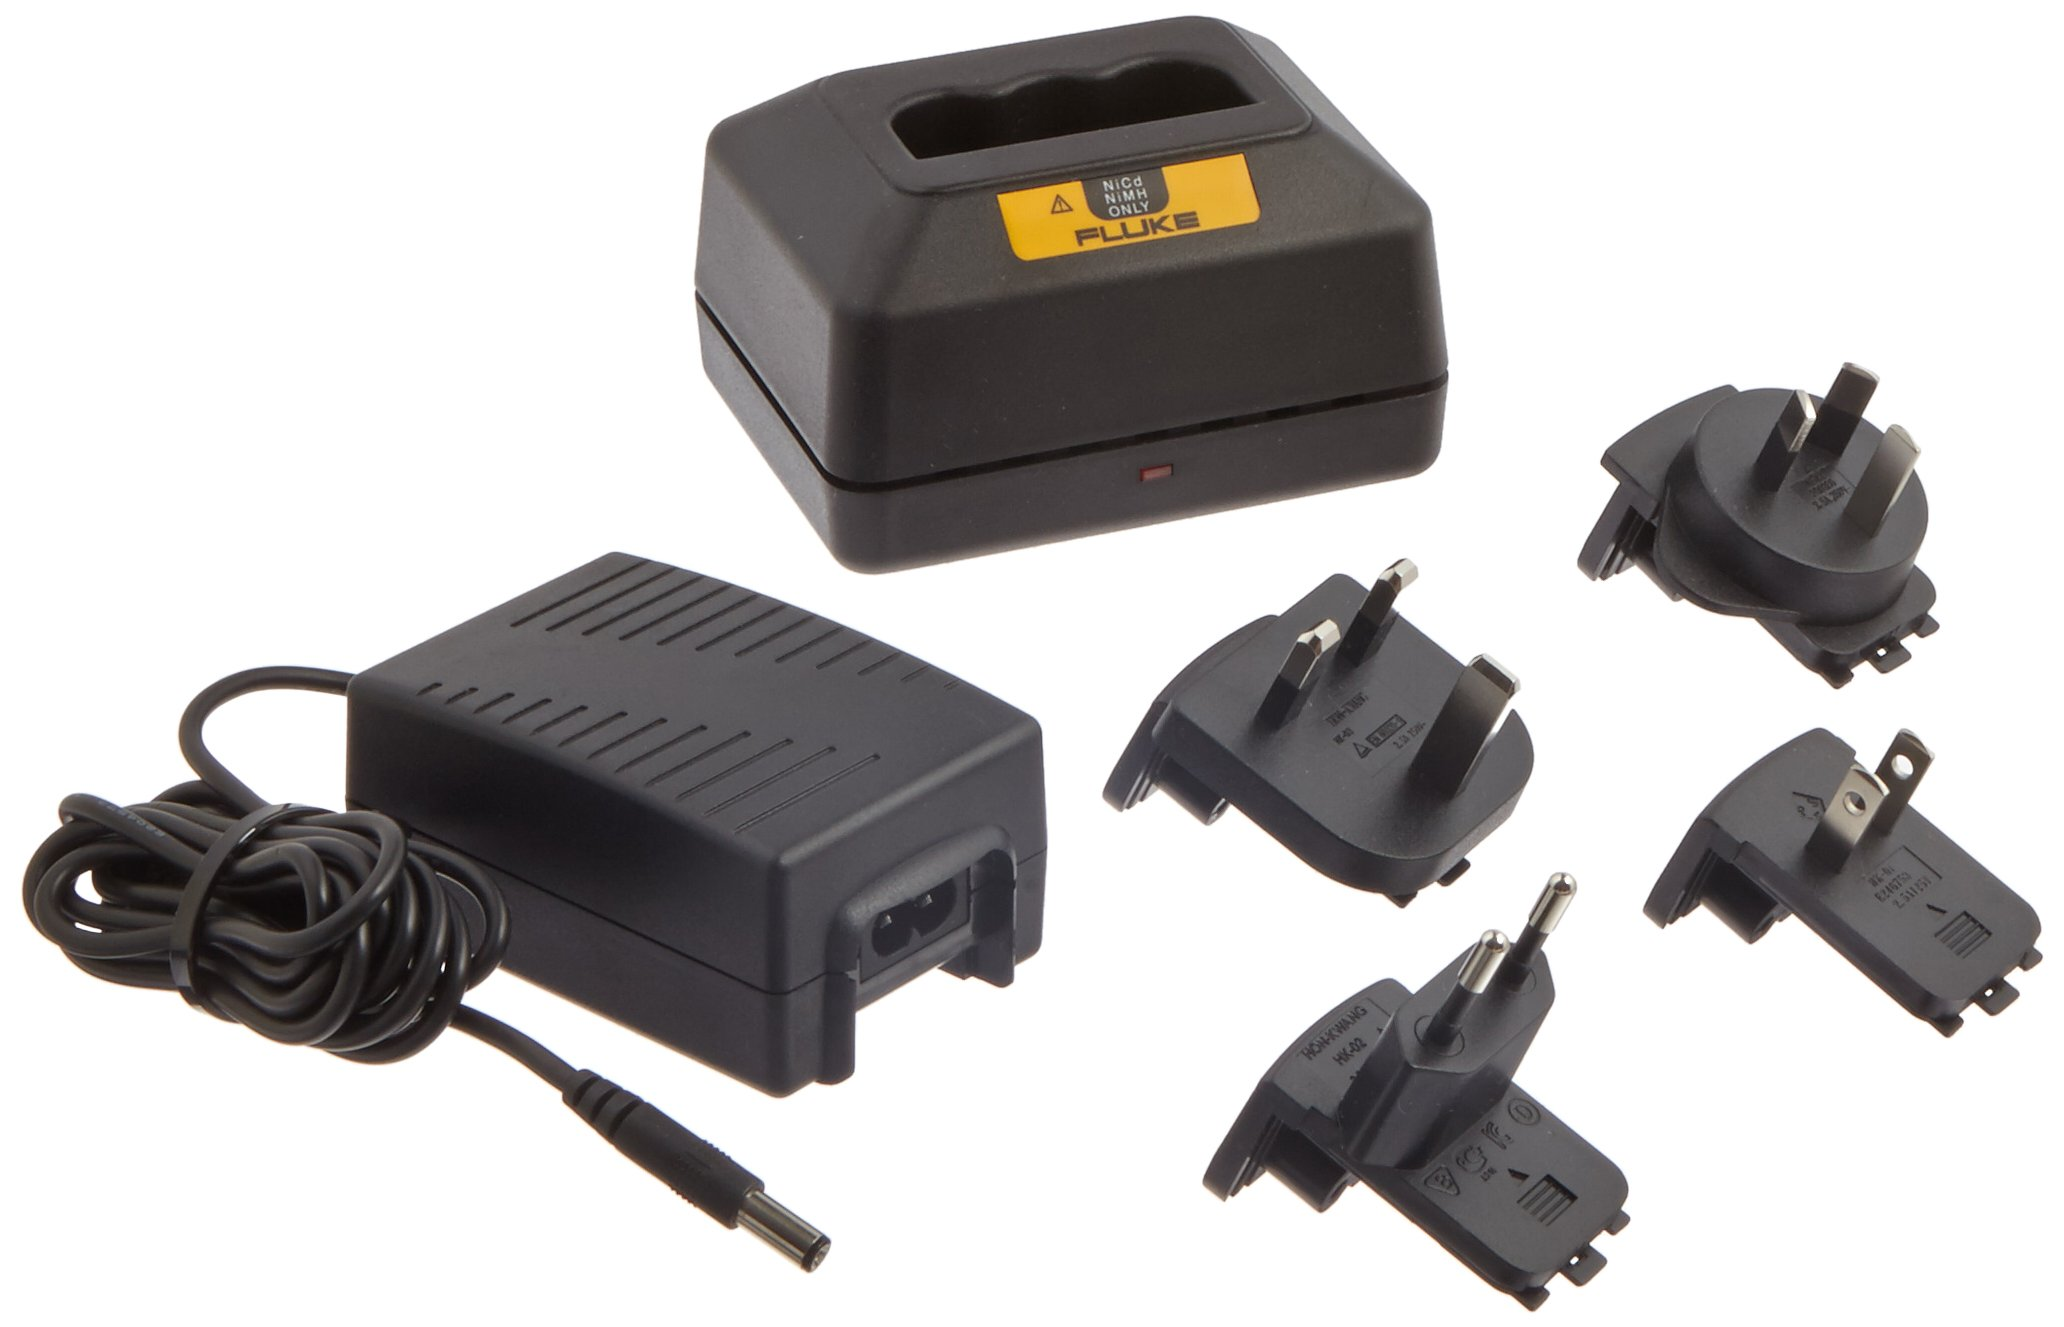 Fluke BC7217 120 Battery Charger for 6KD43, 6KD44 and 6KD45 Process Calibrators by Fluke